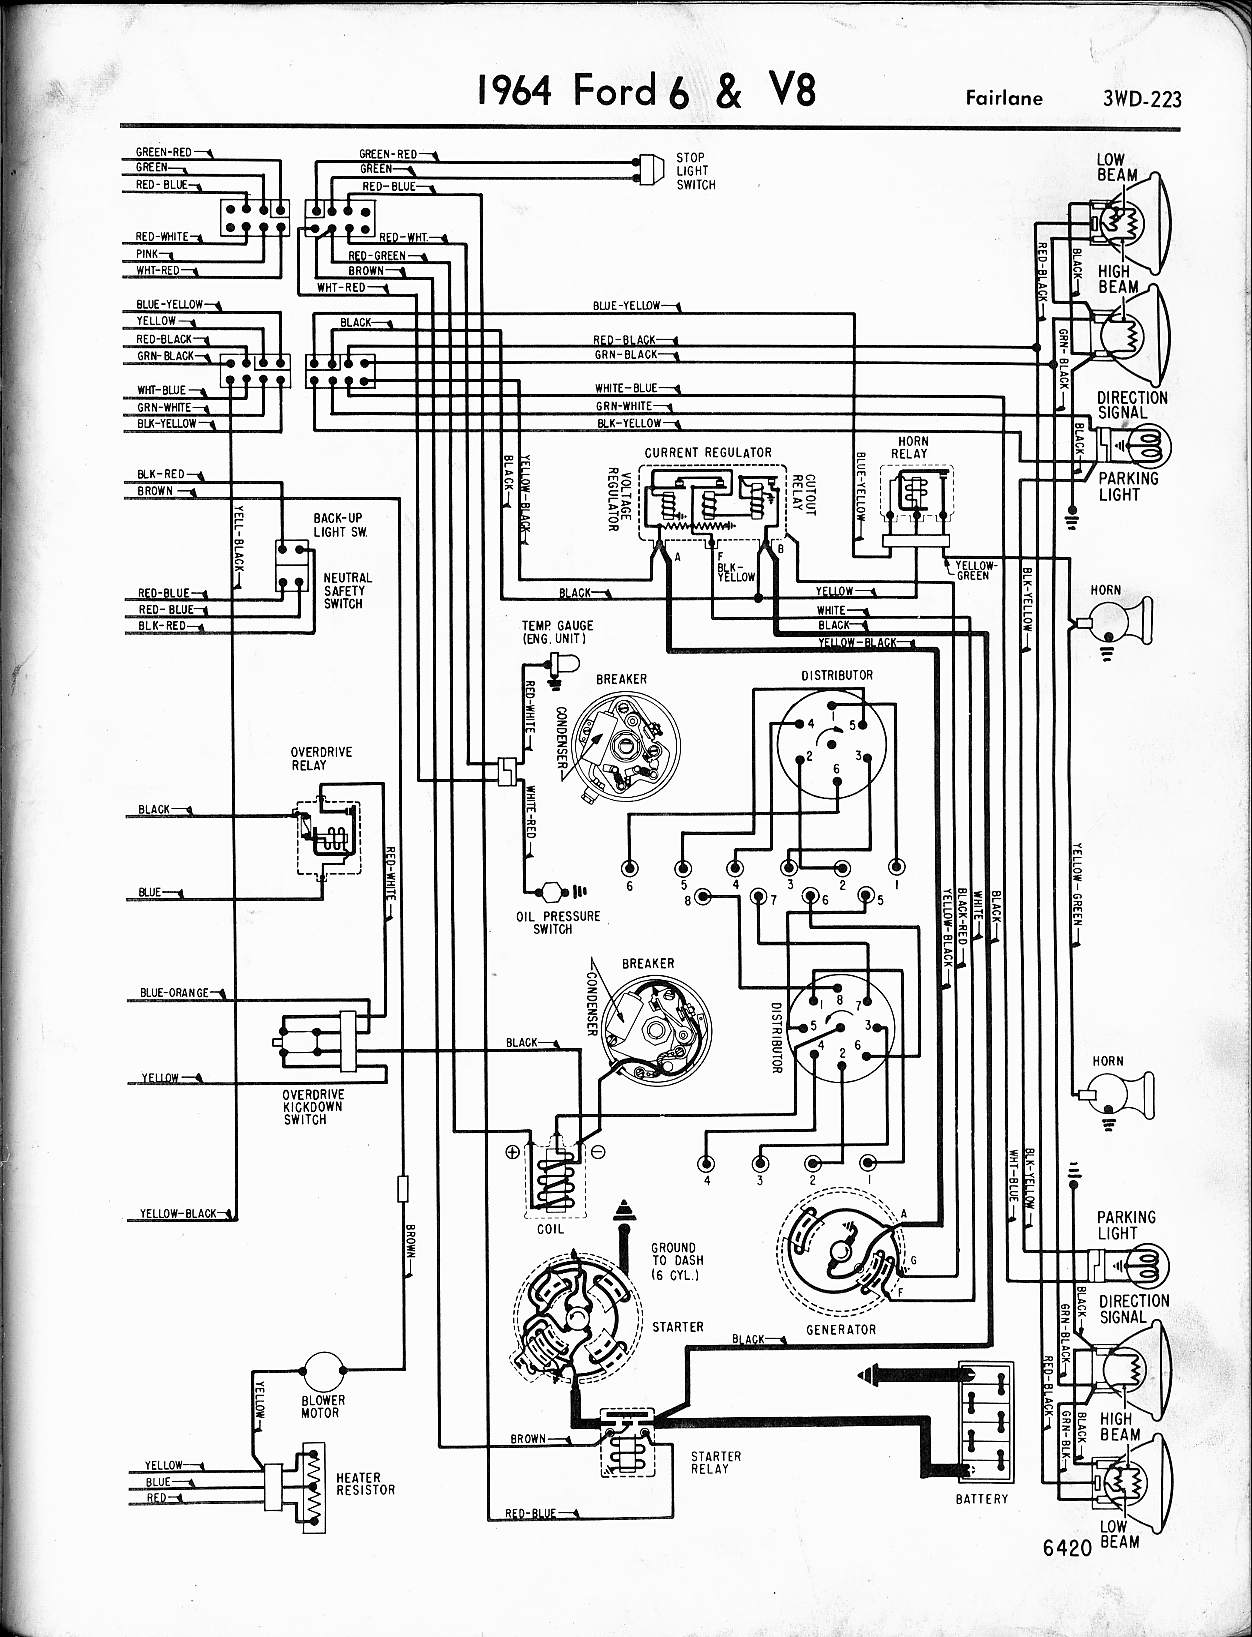 1964 Ford Falcon Wiring Archive Of Automotive Diagram 1973 Ranchero Electrical Diagrams 1968 Detailed Schematics Rh Technograffito Com